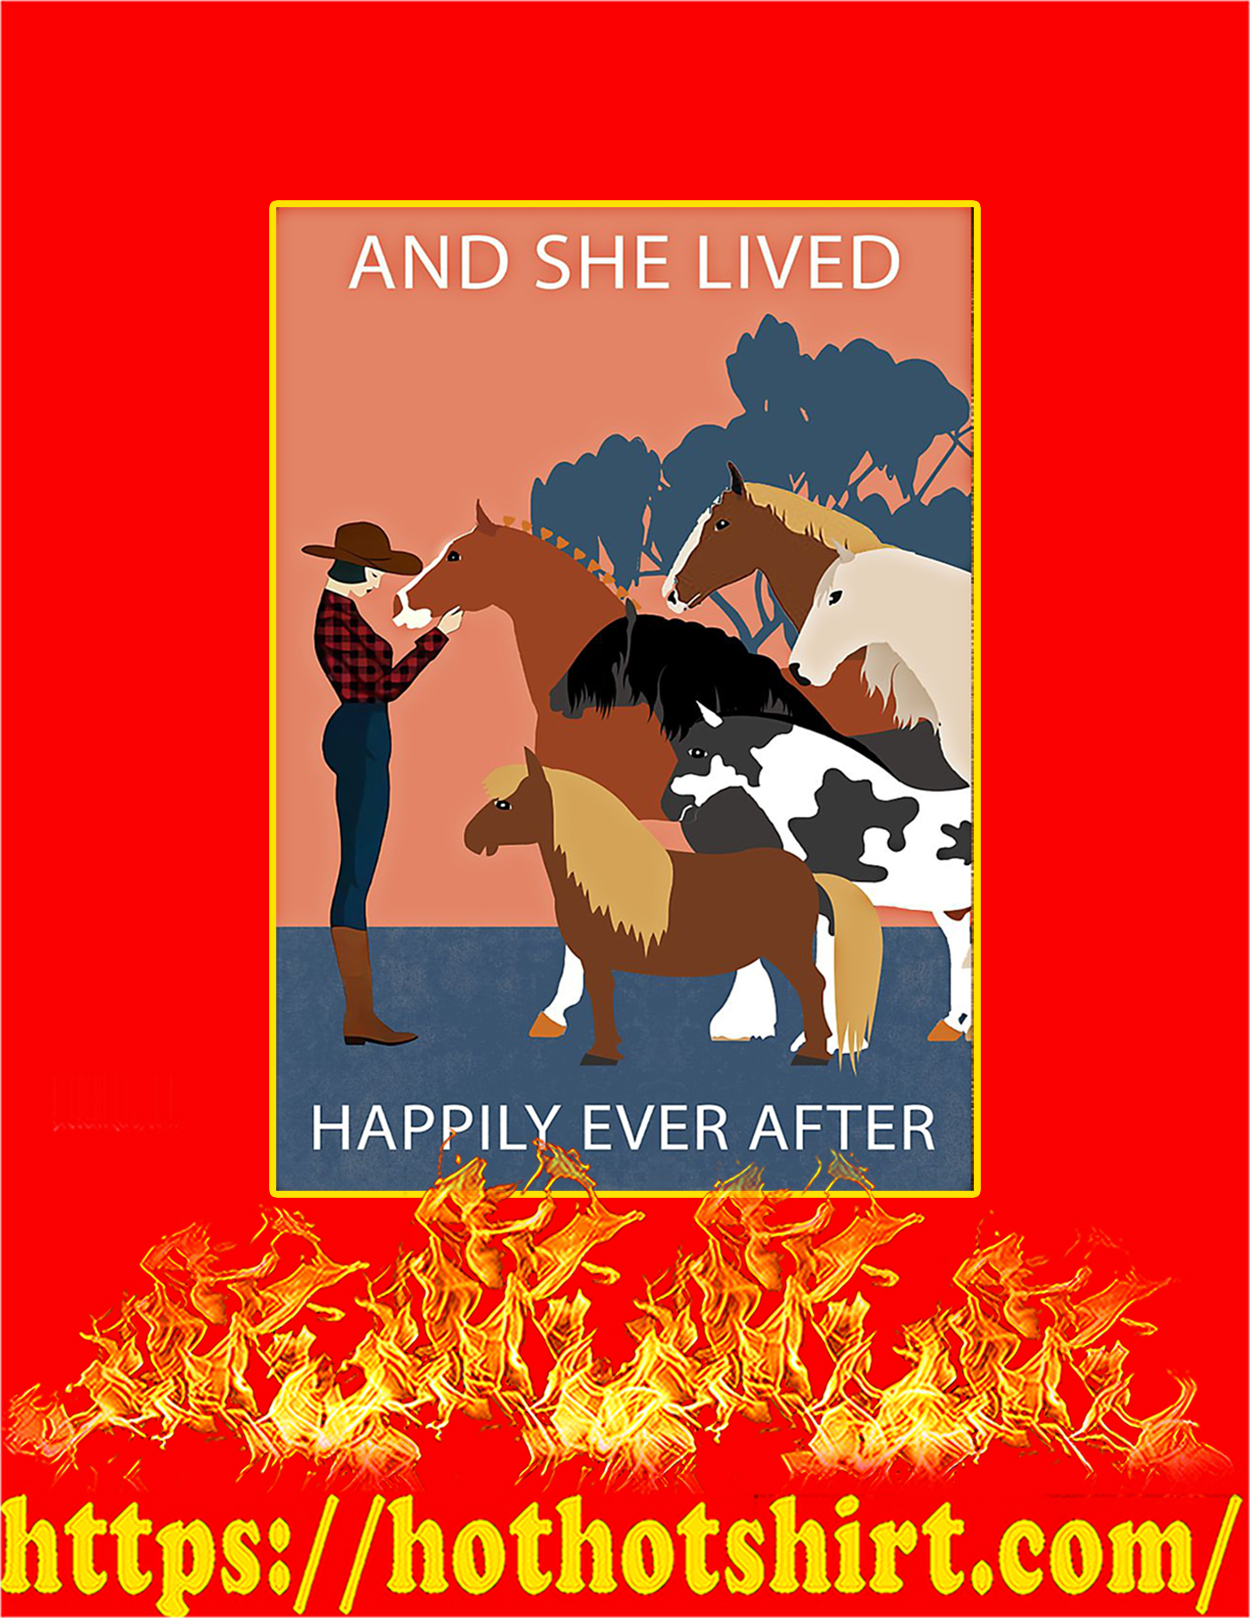 Horses And she lived happily ever after poster - A3